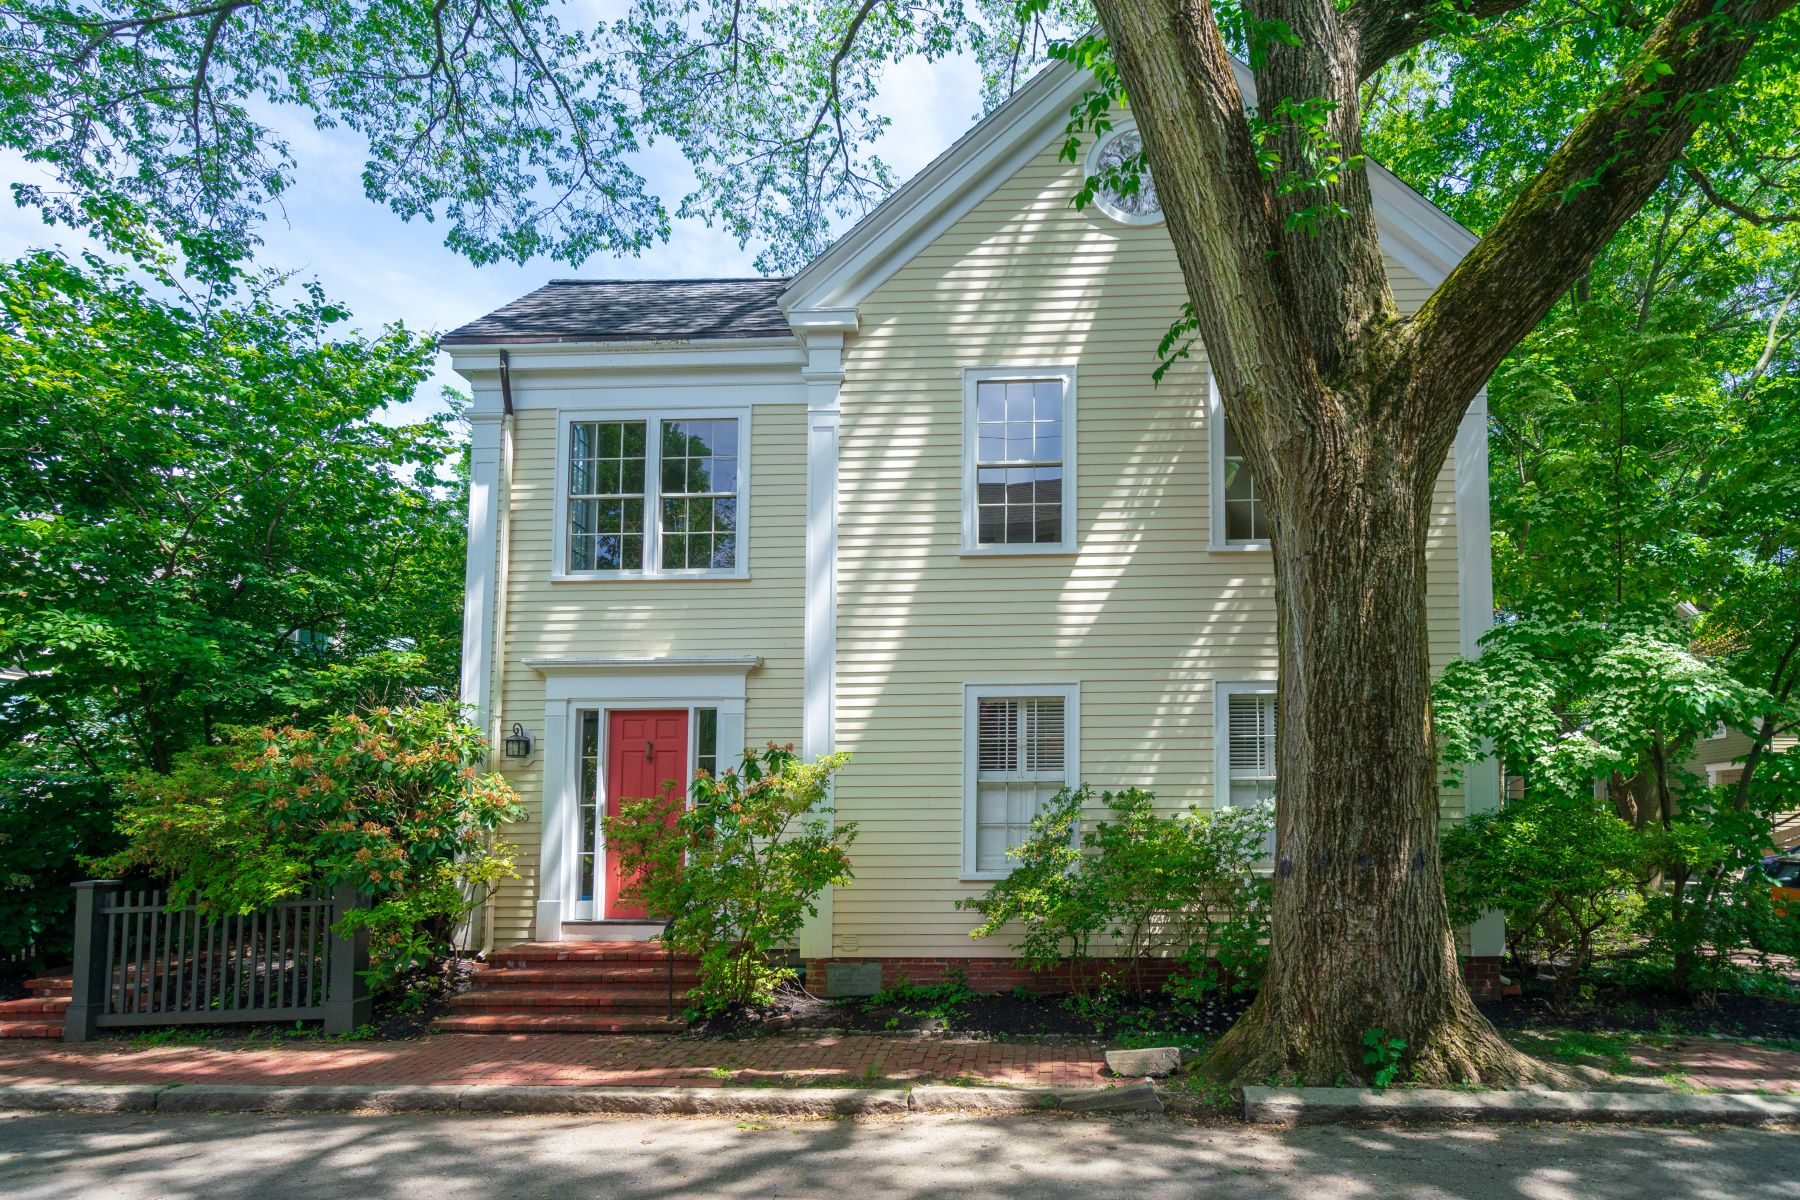 Single Family Homes for Active at 20 Brown St Cambridge, Massachusetts 02138 United States